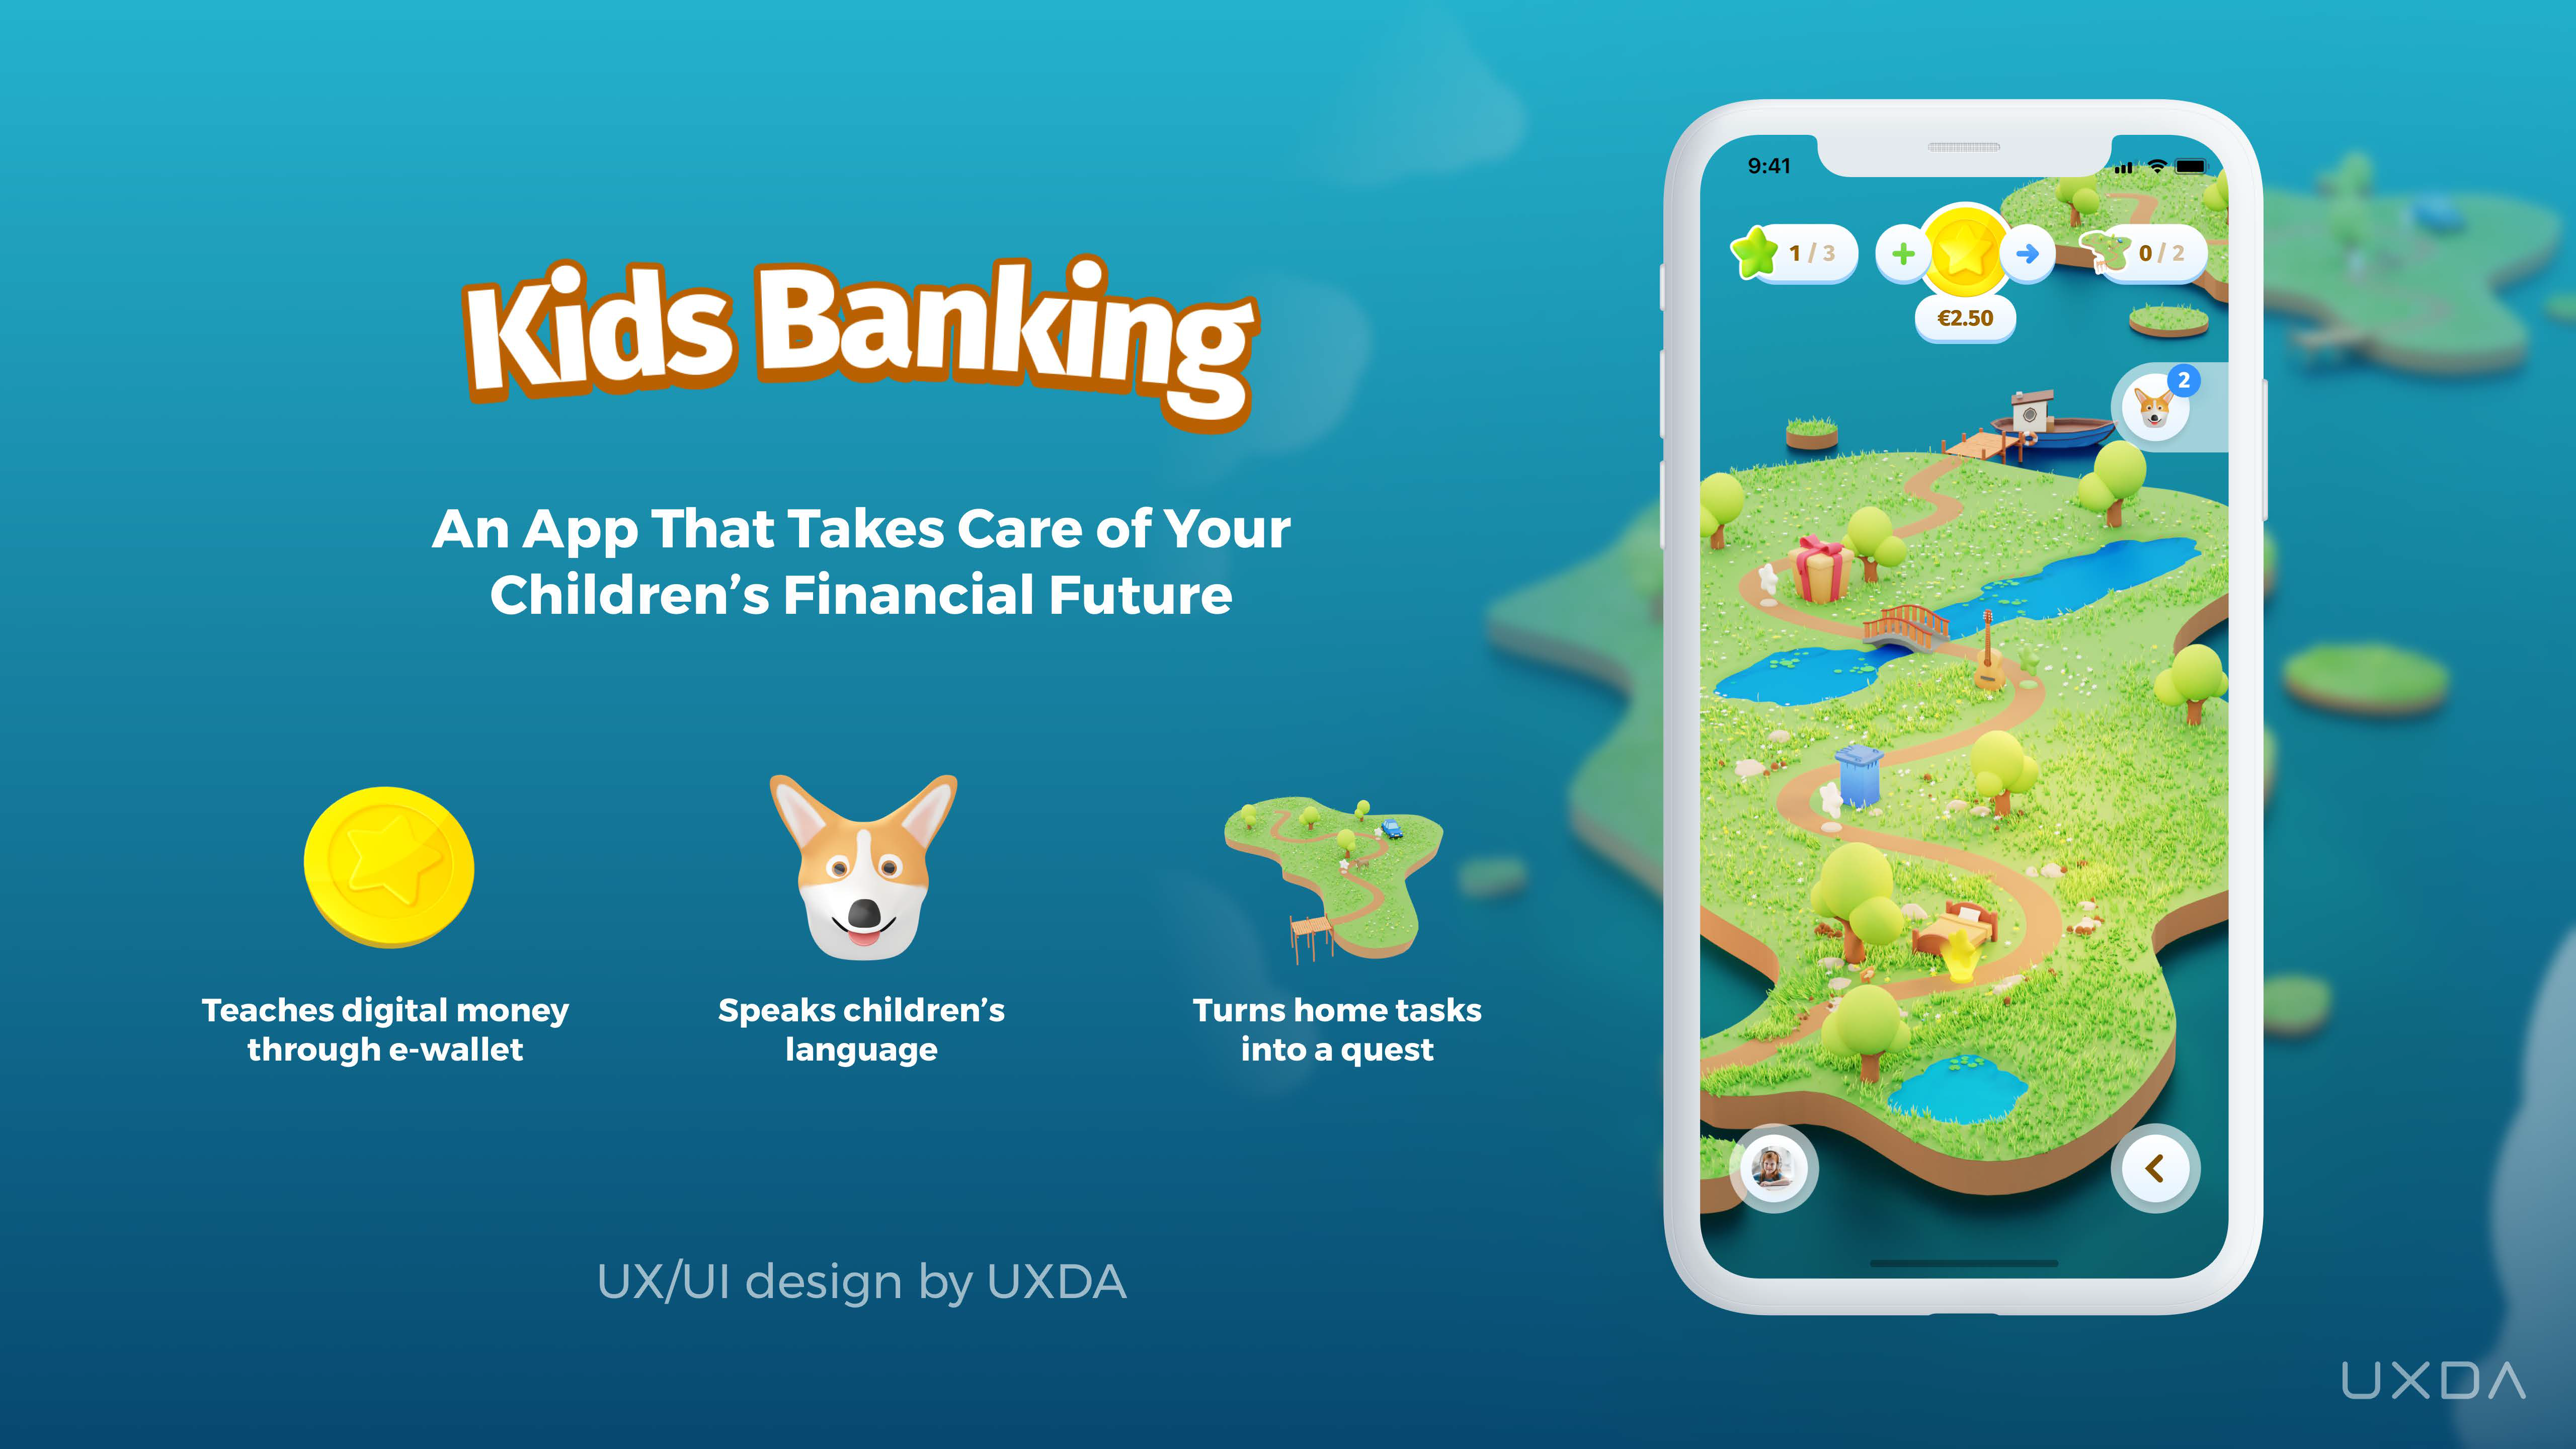 The banking app that playfully teaches kids to save money in order to save their future